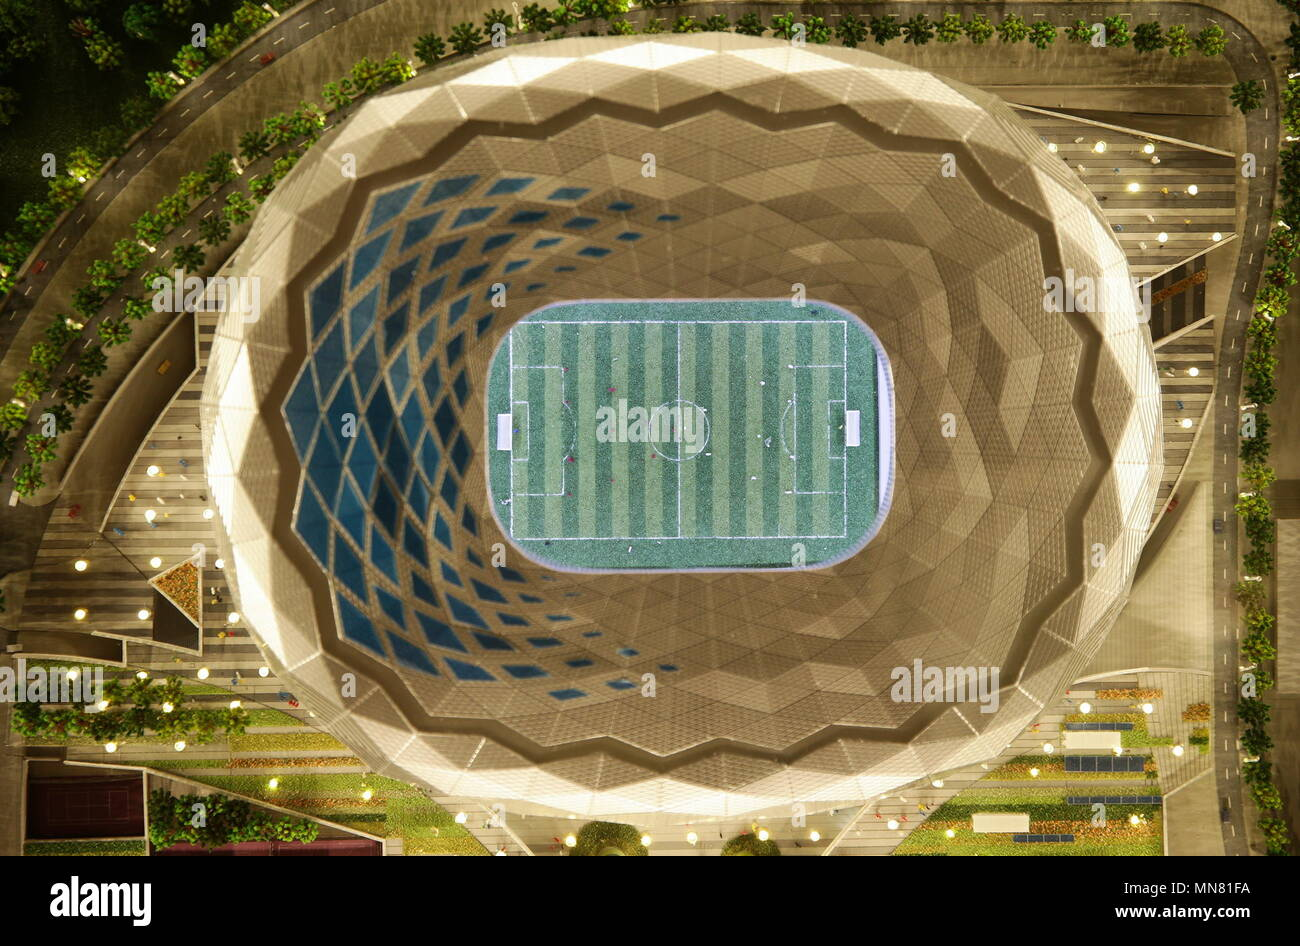 Doha, Qatar. 13th May, 2018. DOHA, QATAR - MAY 13, 2018: A mock-up of Ahmed bin Ali Stadium, a venue for 2022 FIFA World Cup football matches, seen at the Headquarters of the Qatar 2022 Local Organising Committee (LOC). Mikhail Aleksandrov/TASS Credit: ITAR-TASS News Agency/Alamy Live News Stock Photo